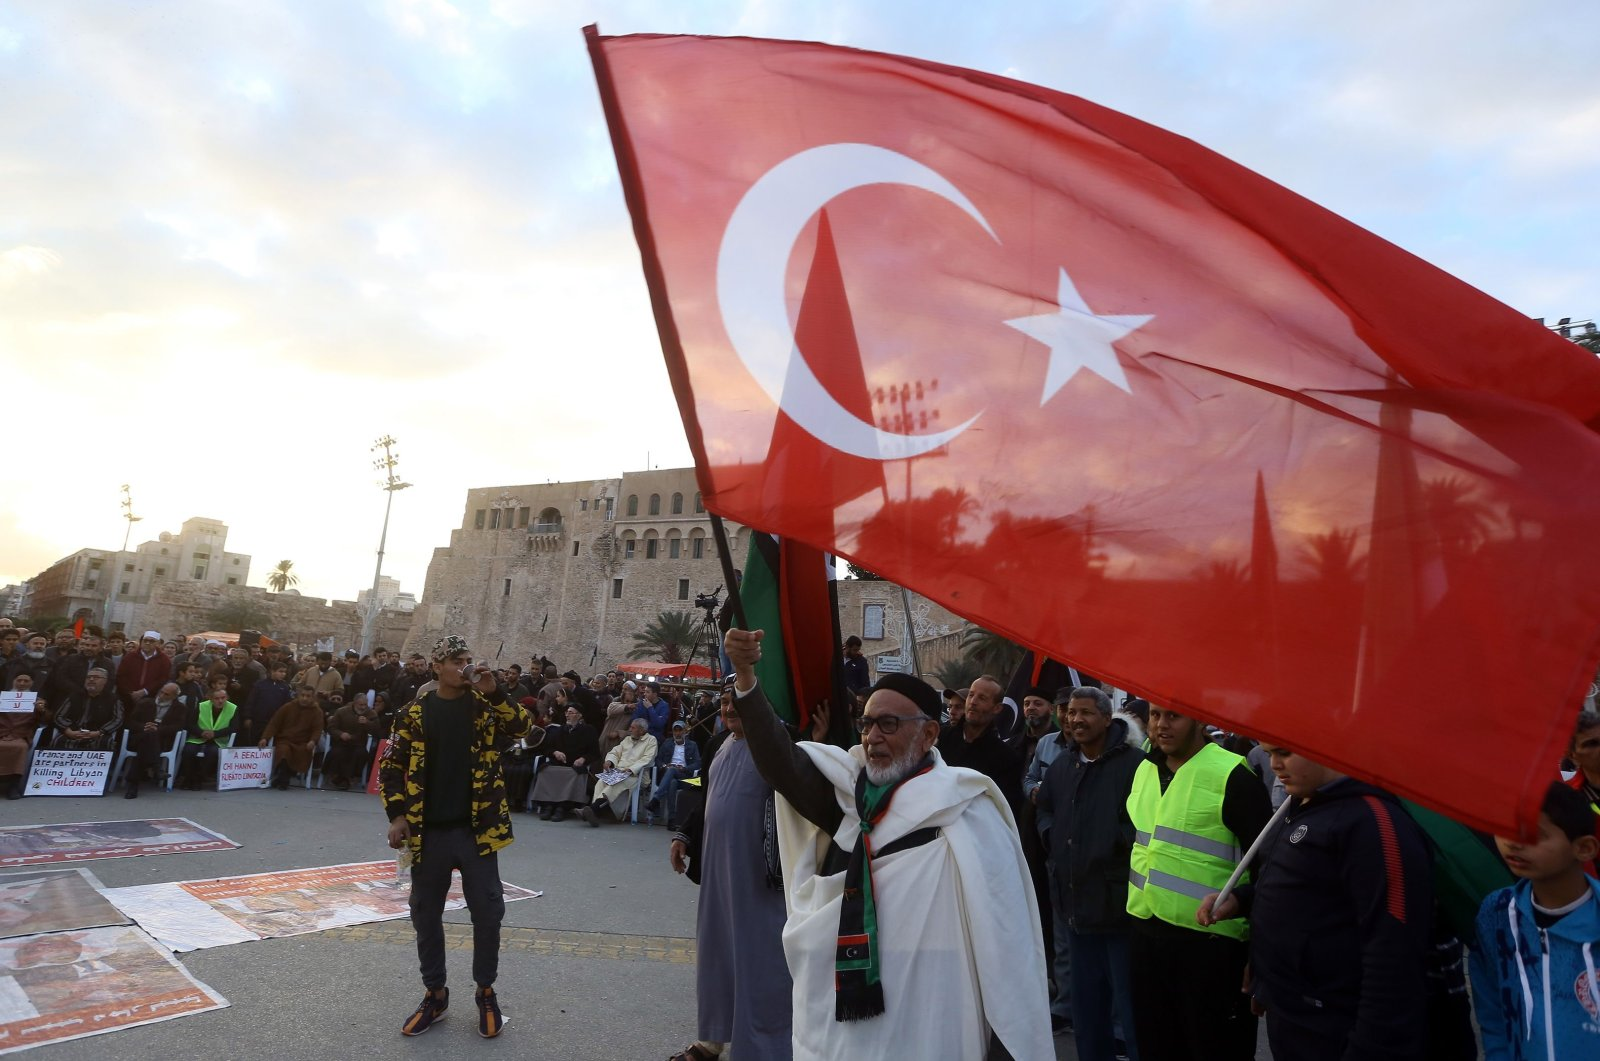 Demonstrators wave a large Turkish flag in a rally against eastern Libyan strongman Khalifa Haftar and in support of the U.N.-recognised Government of National Accord (GNA) in Martyrs' Square in the GNA-held capital Tripoli, Jan. 10, 2020. (AFP Photo)